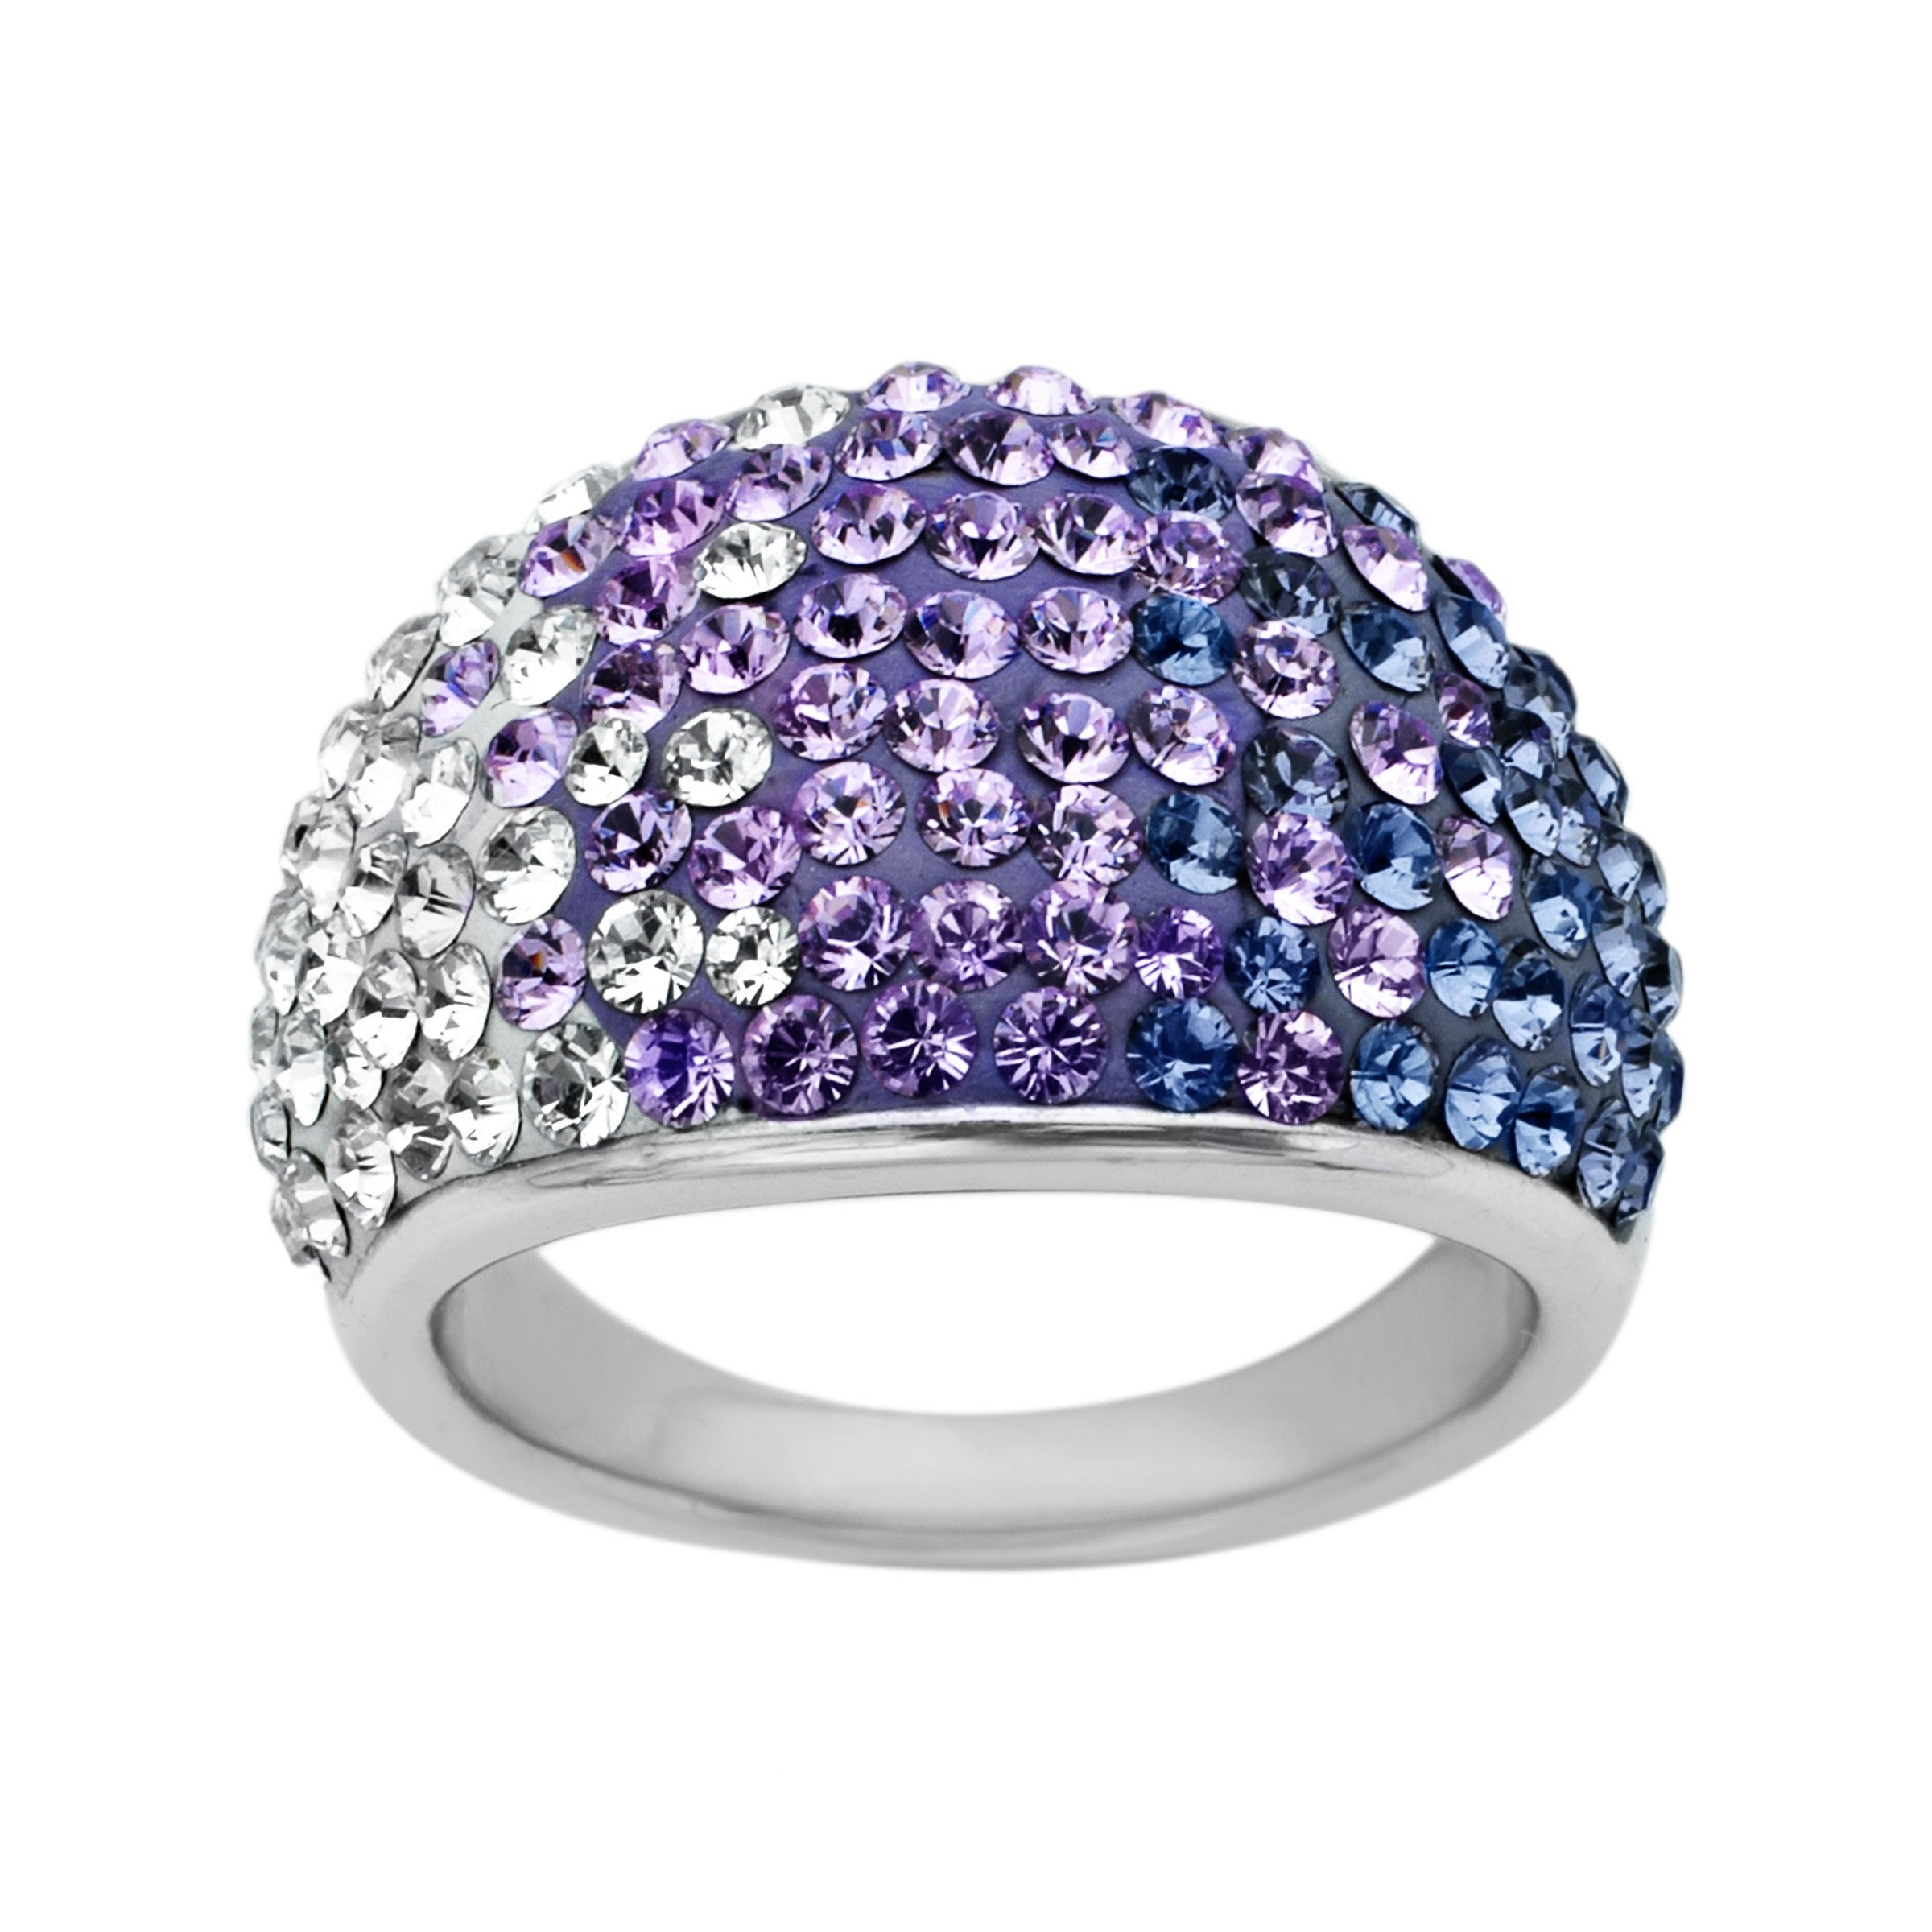 38b8ef494 Crystal Crystaluxe Jewelry | Shop our Best Jewelry & Watches Deals Online  at Overstock